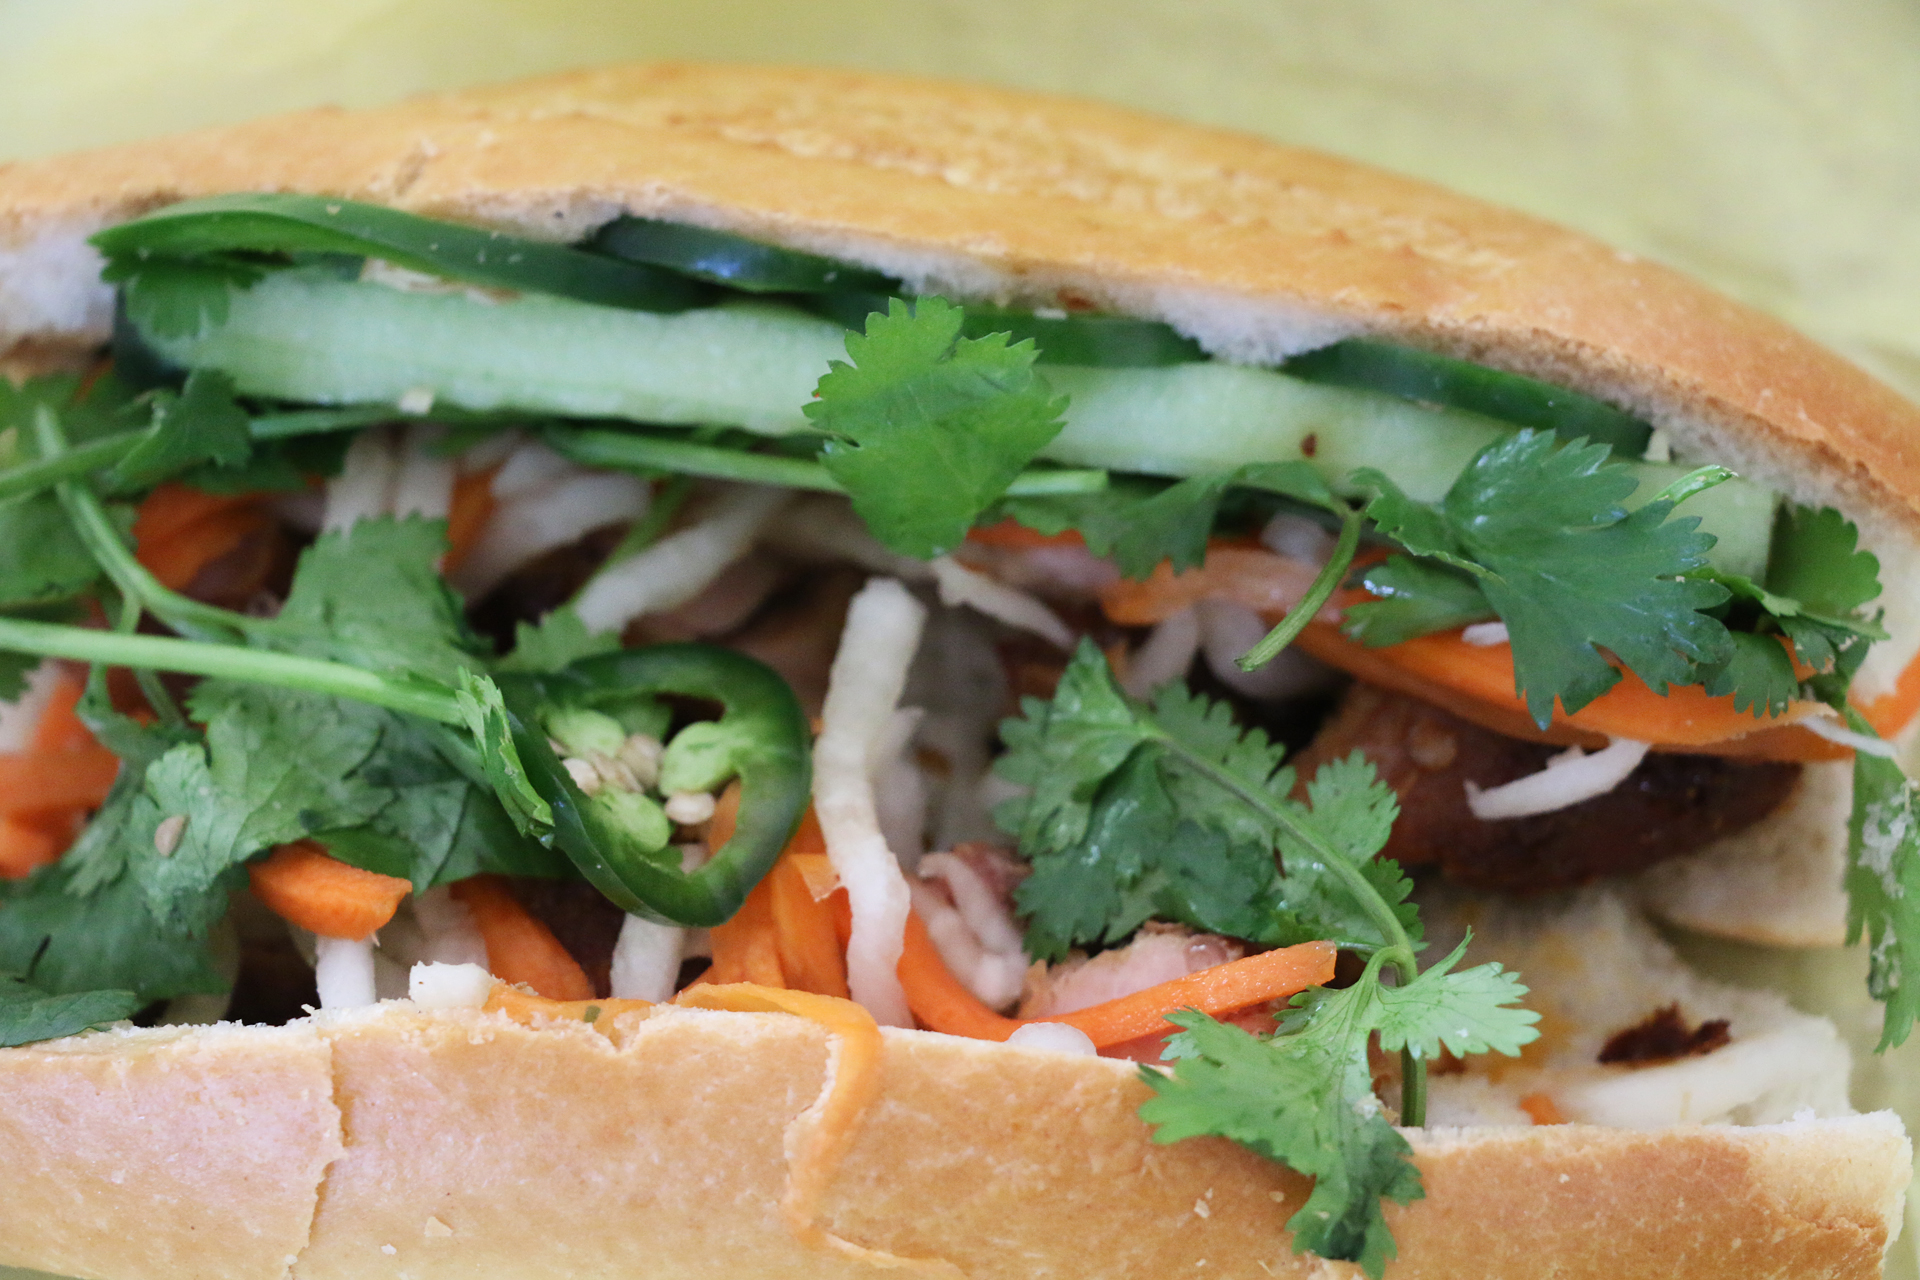 Ba Le grilled chicken banh mi